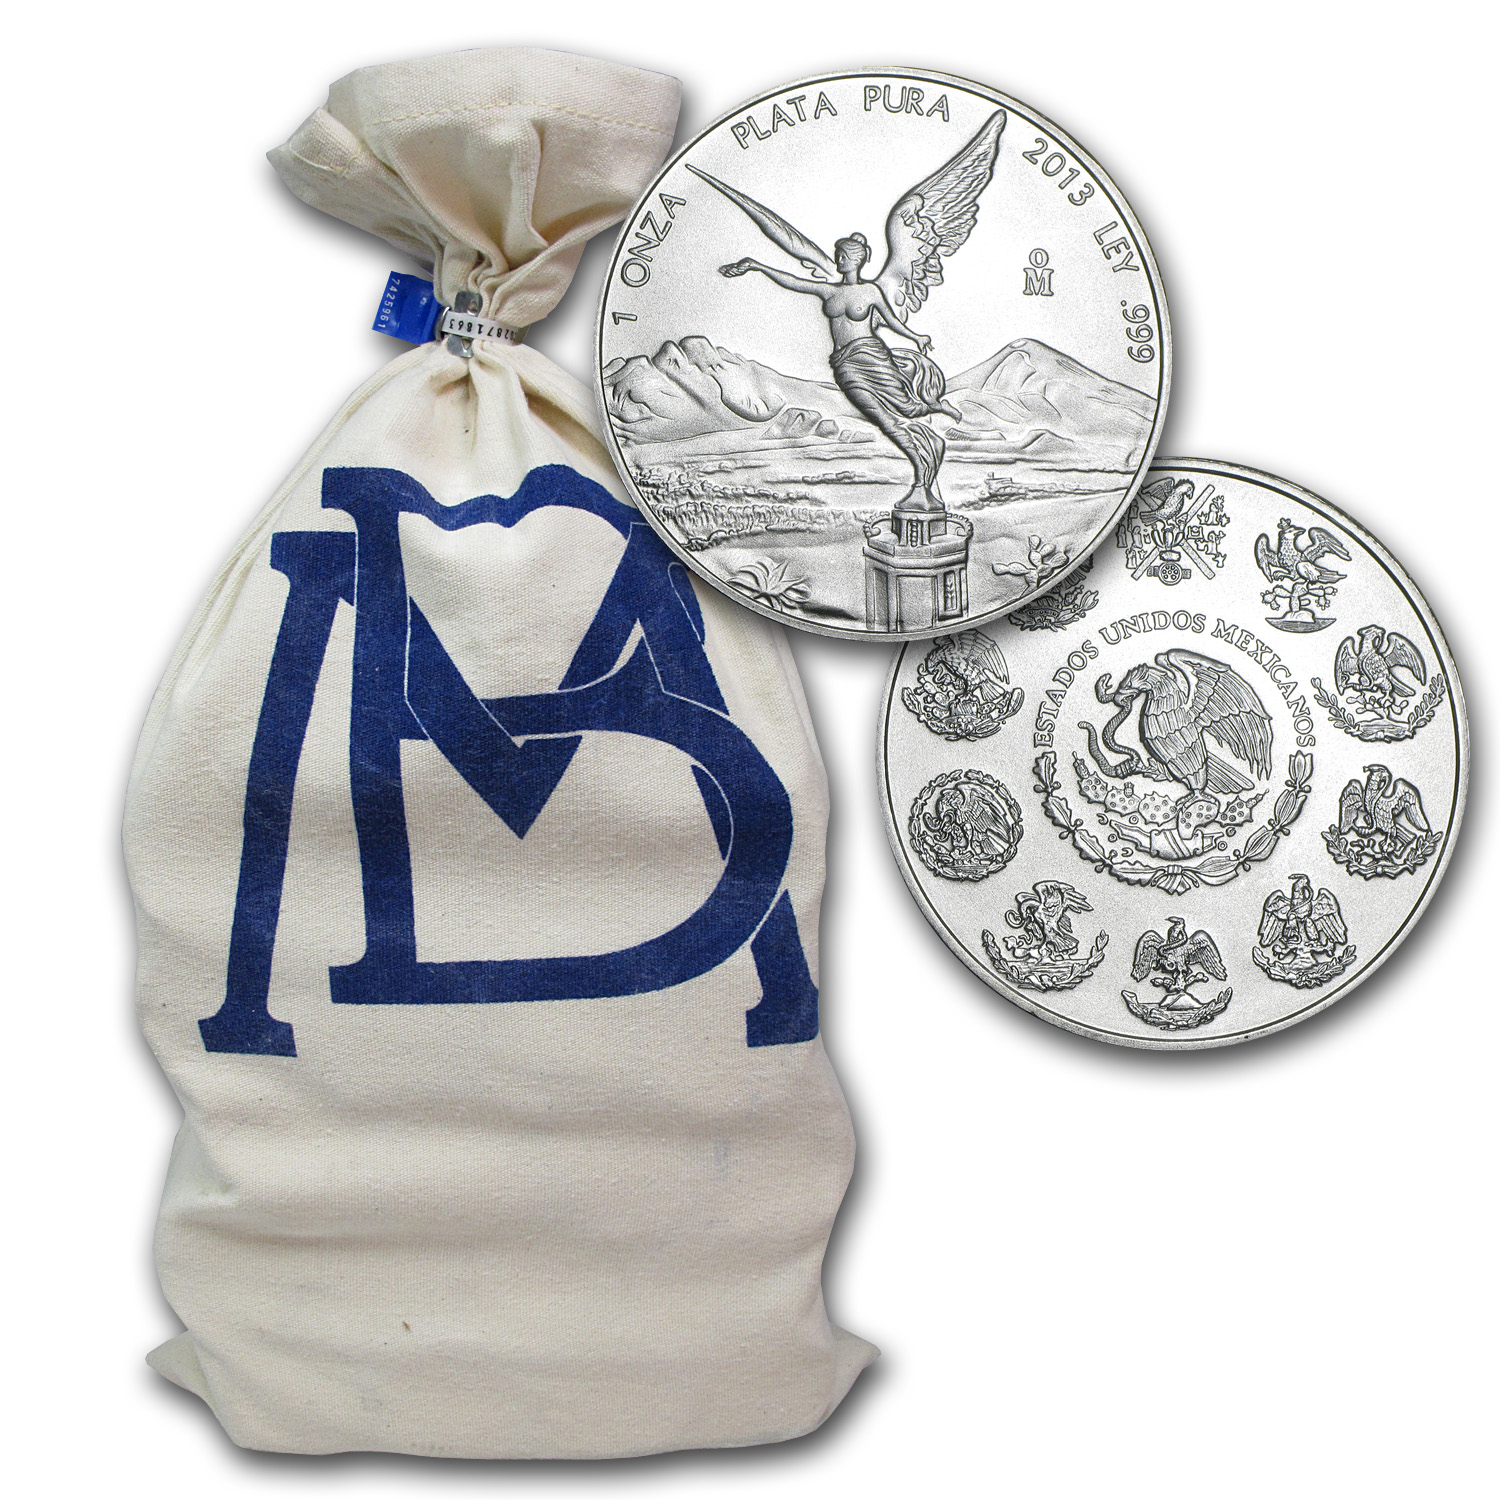 2013 Mexico 1 oz Silver Libertad (450-Coin Original Bank Bag)